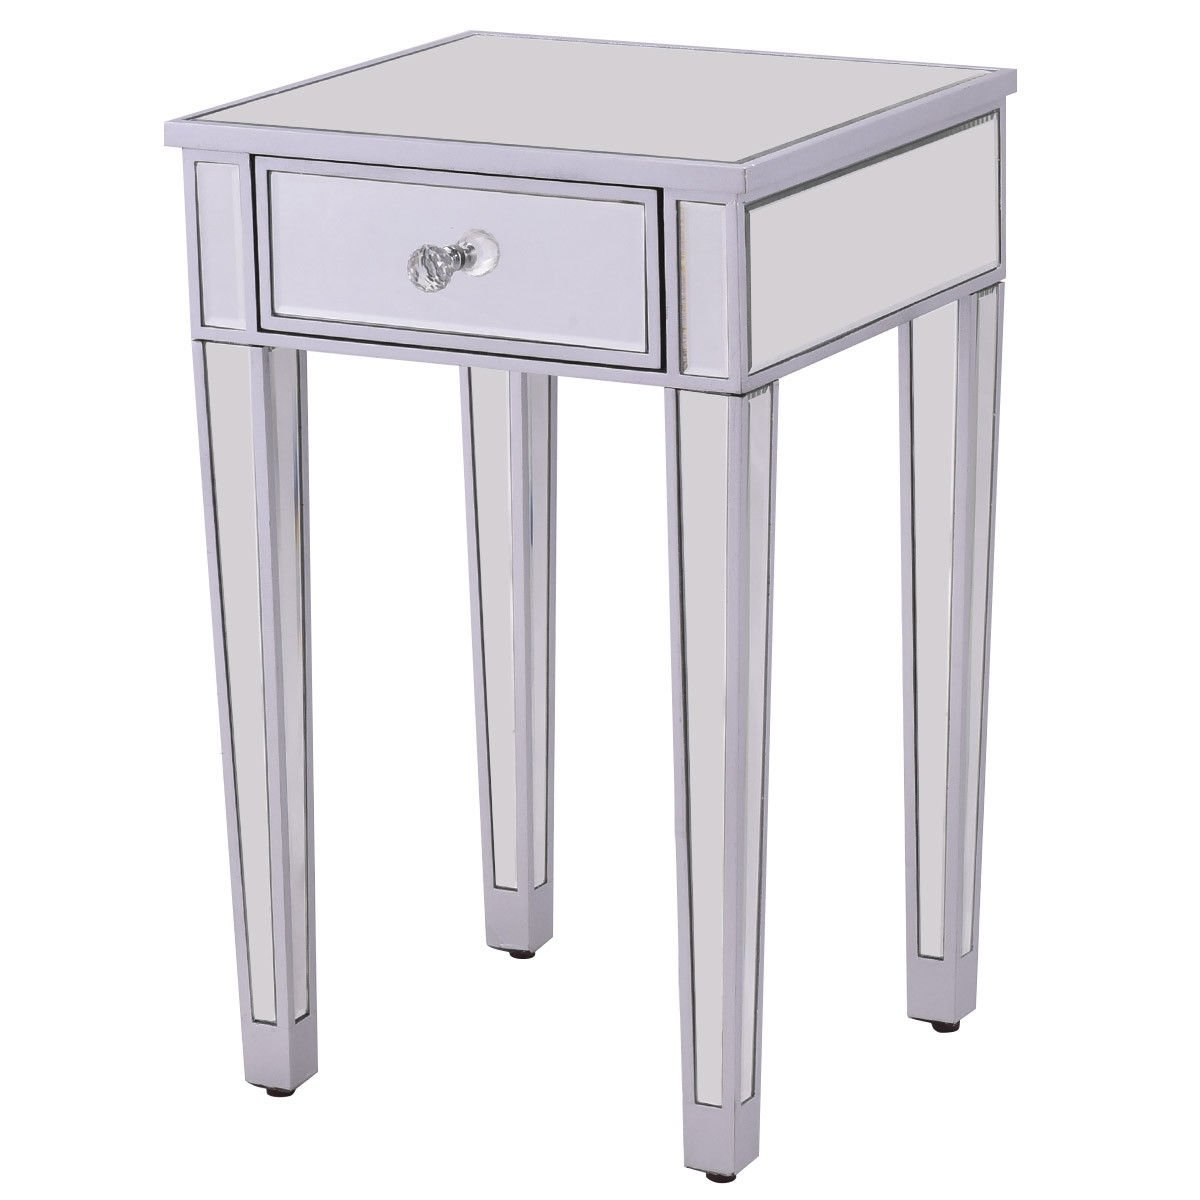 way pcs mirrored accent table nightstand end storage cabinet drawer sliver free shipping today telesco legs teal inch console dining tables for small spaces large grey clock white